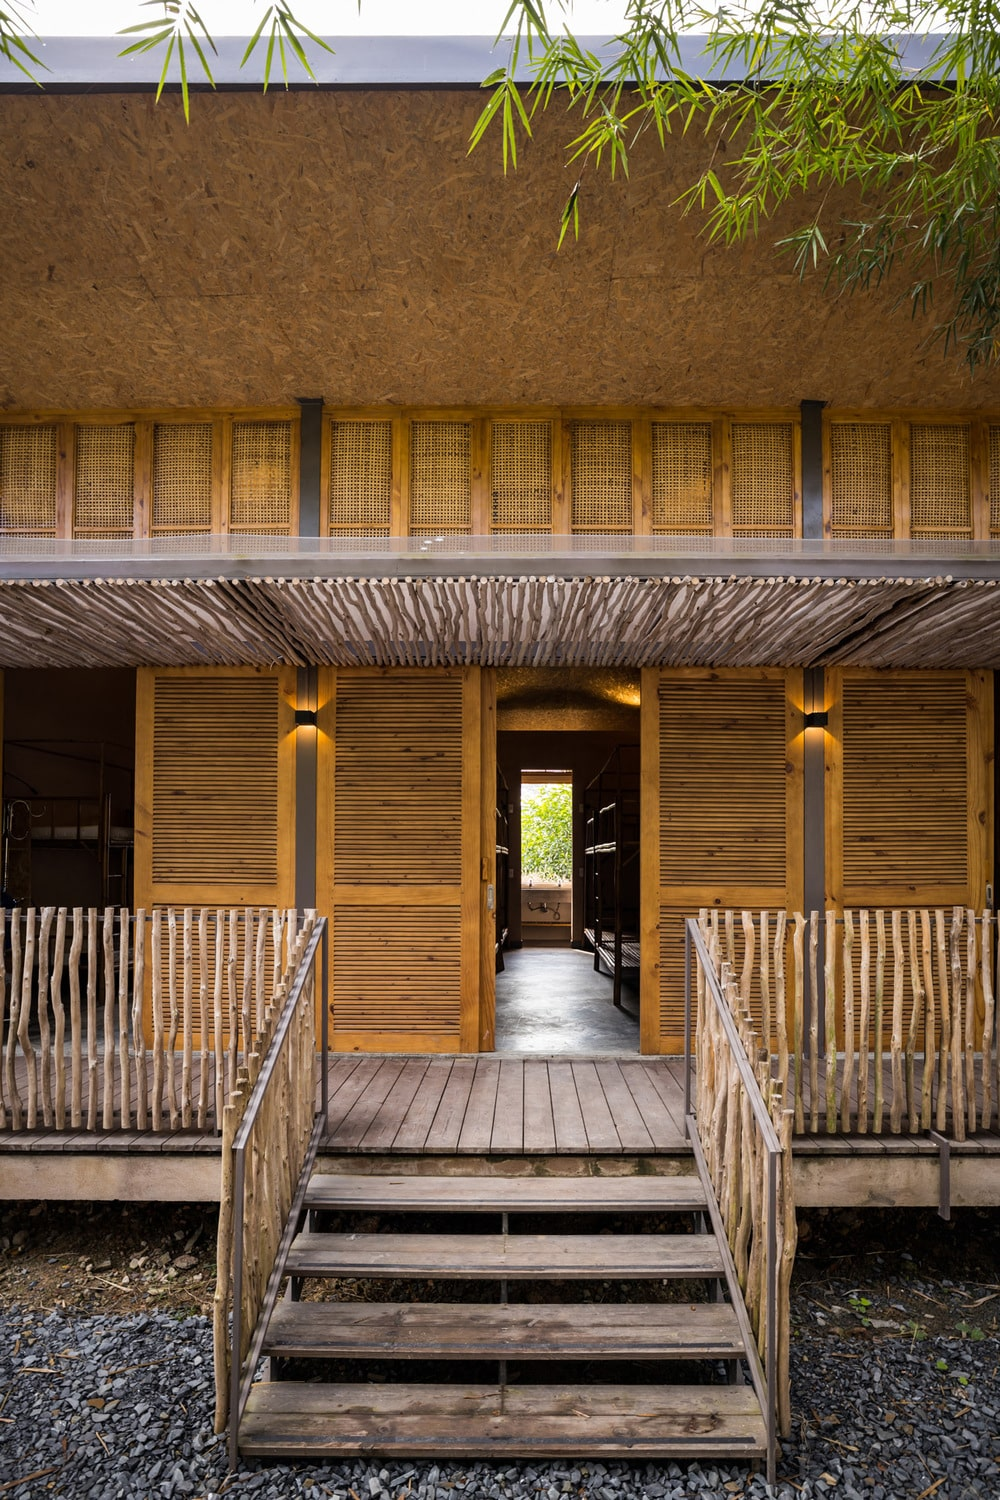 This is a close look at the wooden steps of the porch and bamboo accents on the walls.